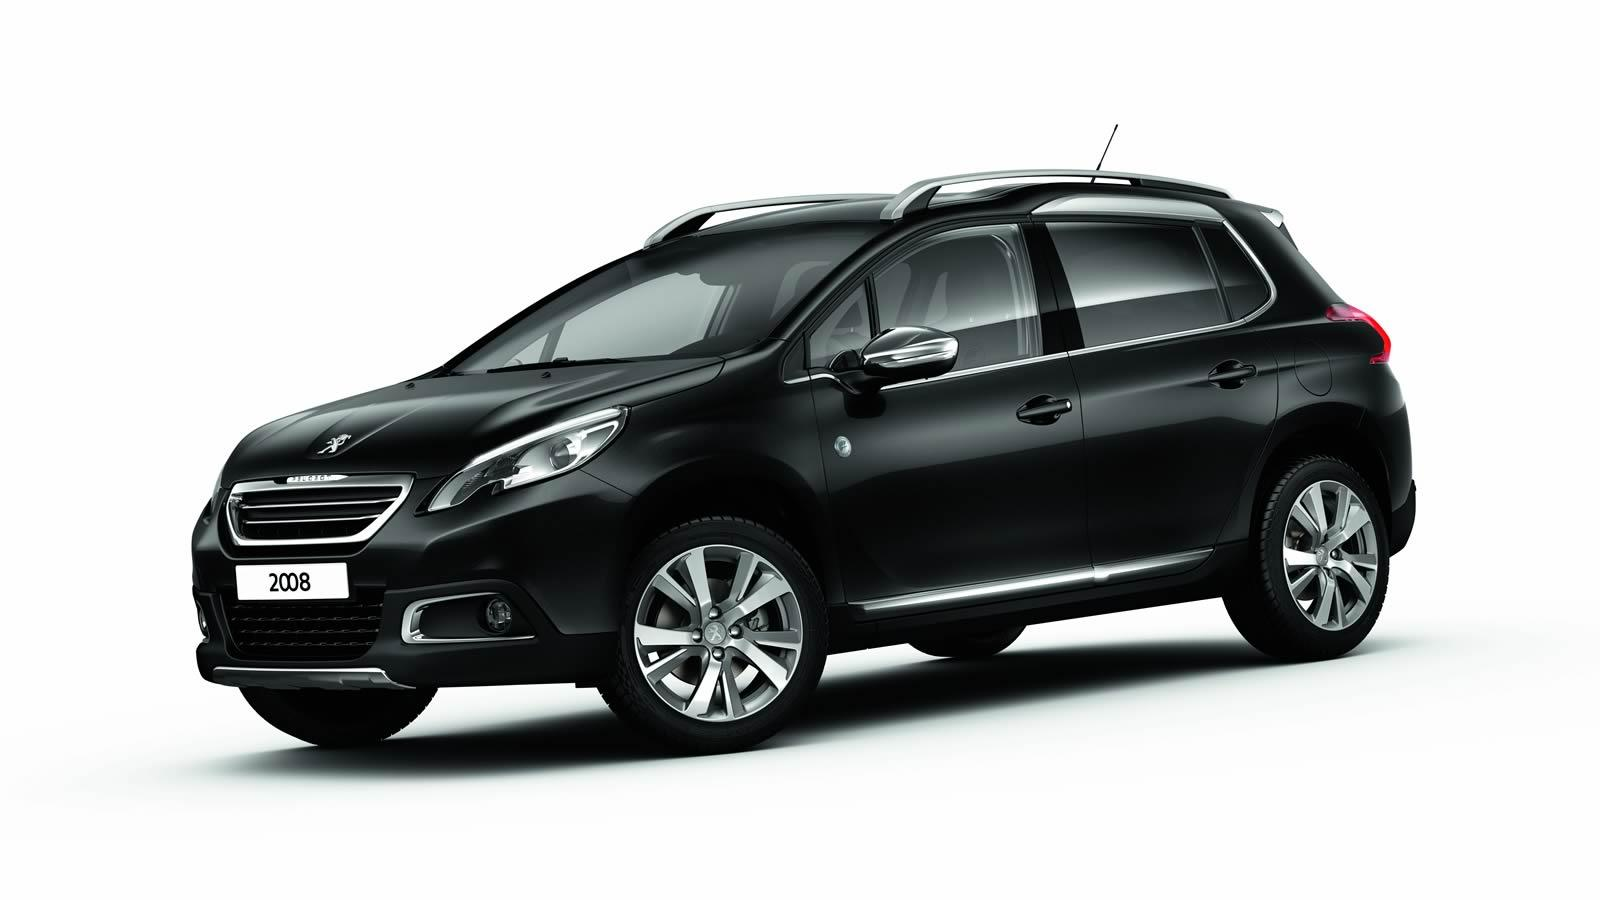 peugeot 2008 3008 crossway special editions unveiled. Black Bedroom Furniture Sets. Home Design Ideas